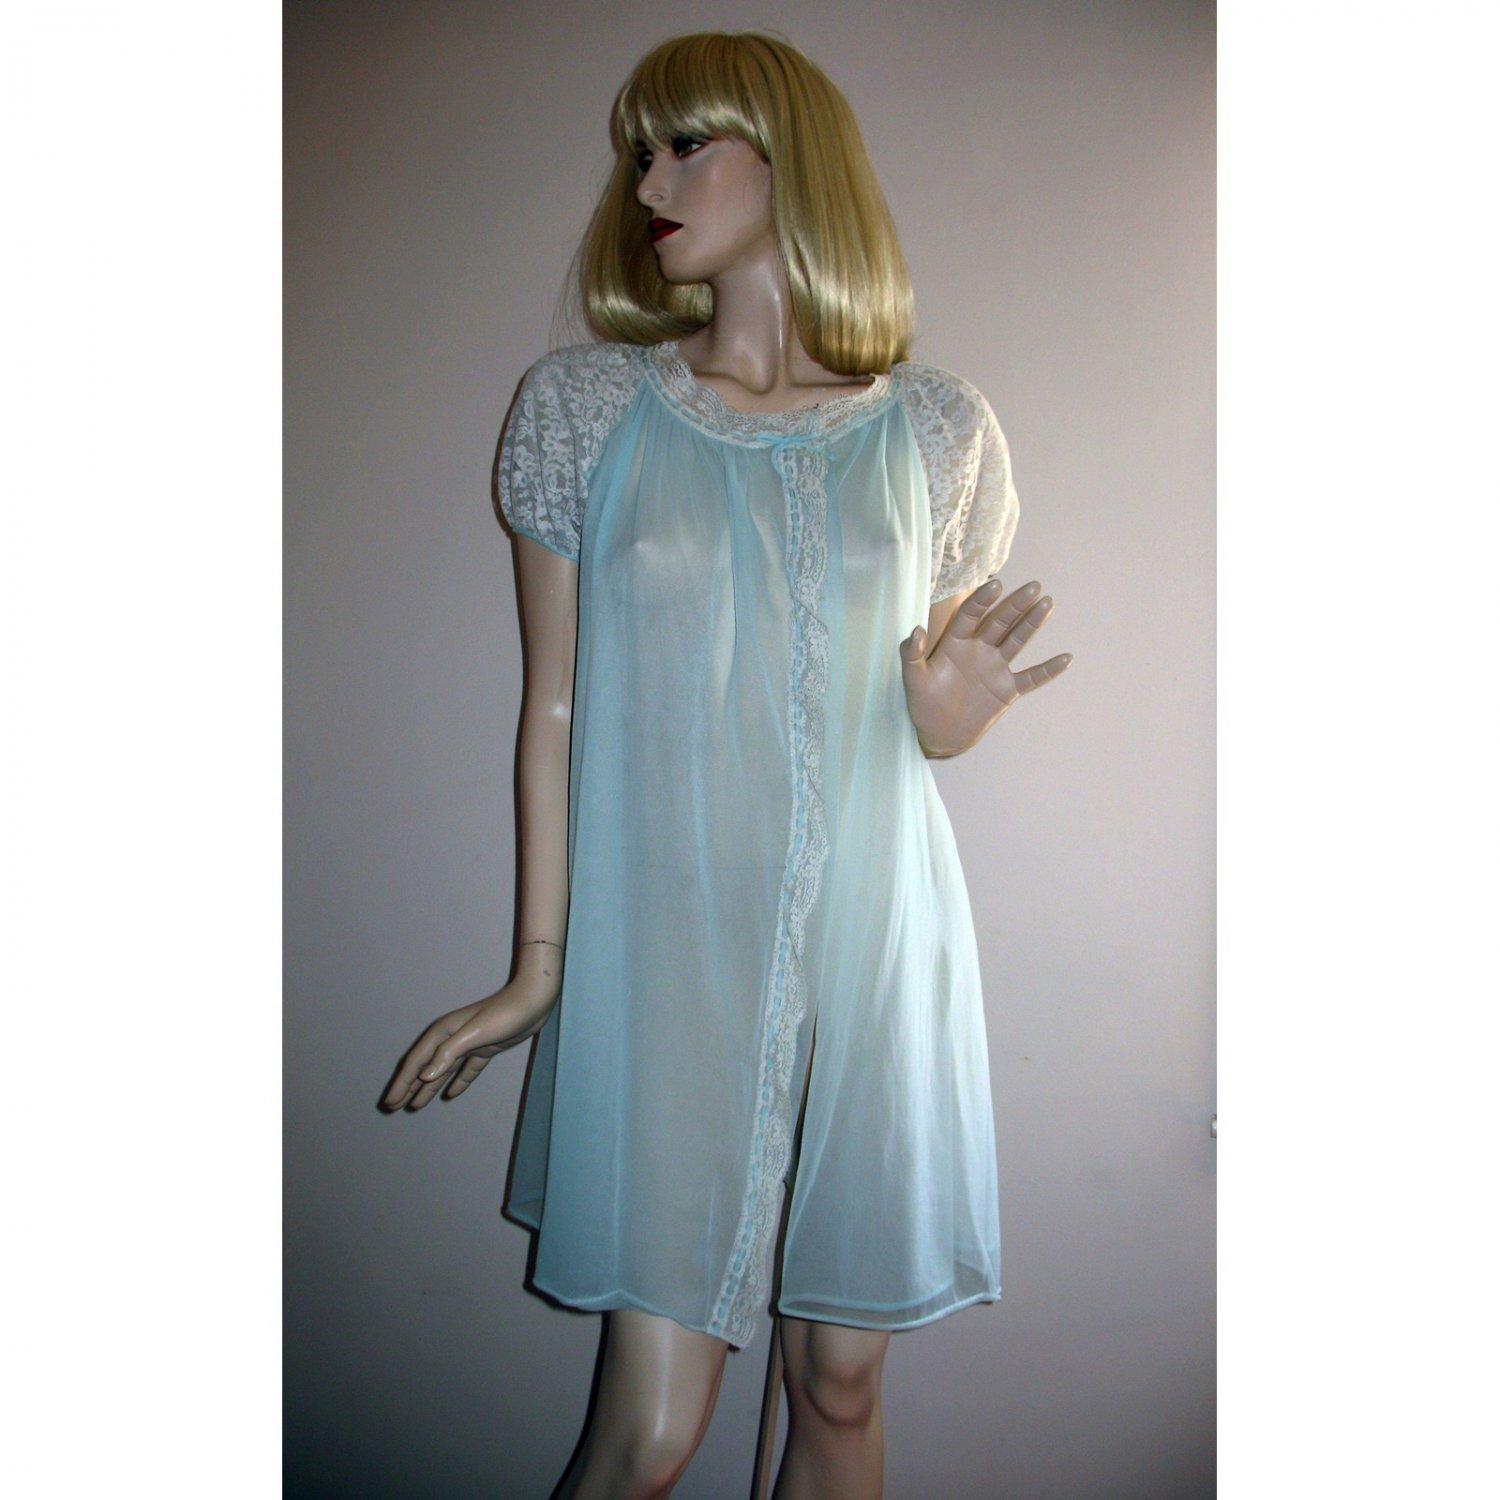 Vintage SHEER Aqua Chiffon NYLON Lace Puff Sleeve Peignoir Robe by Radcliffe Lingerie M L